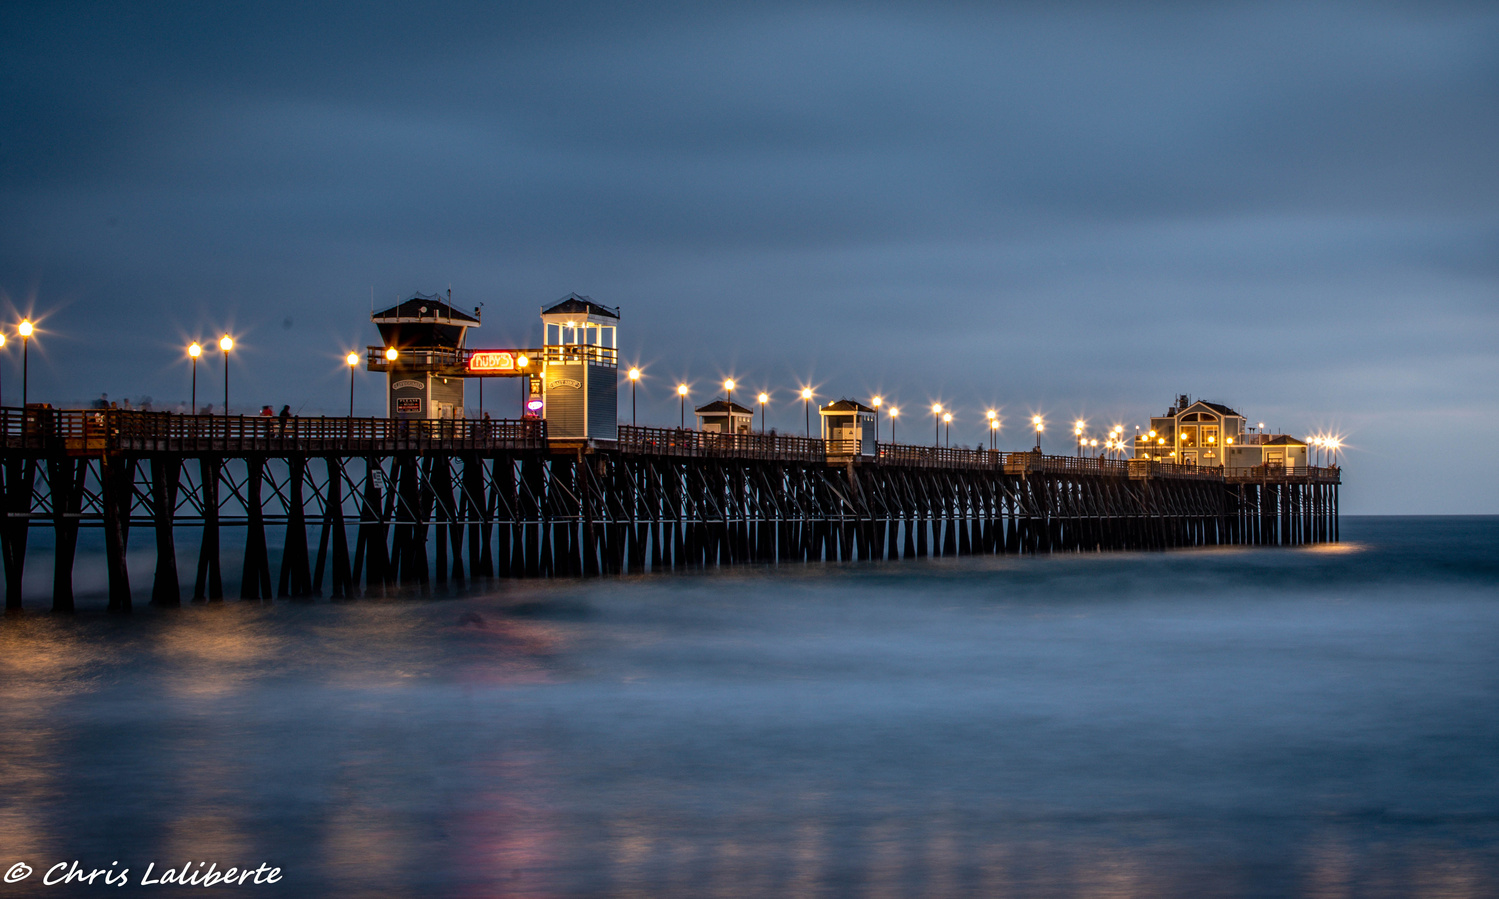 Sunset at pier by Christopher Laliberte